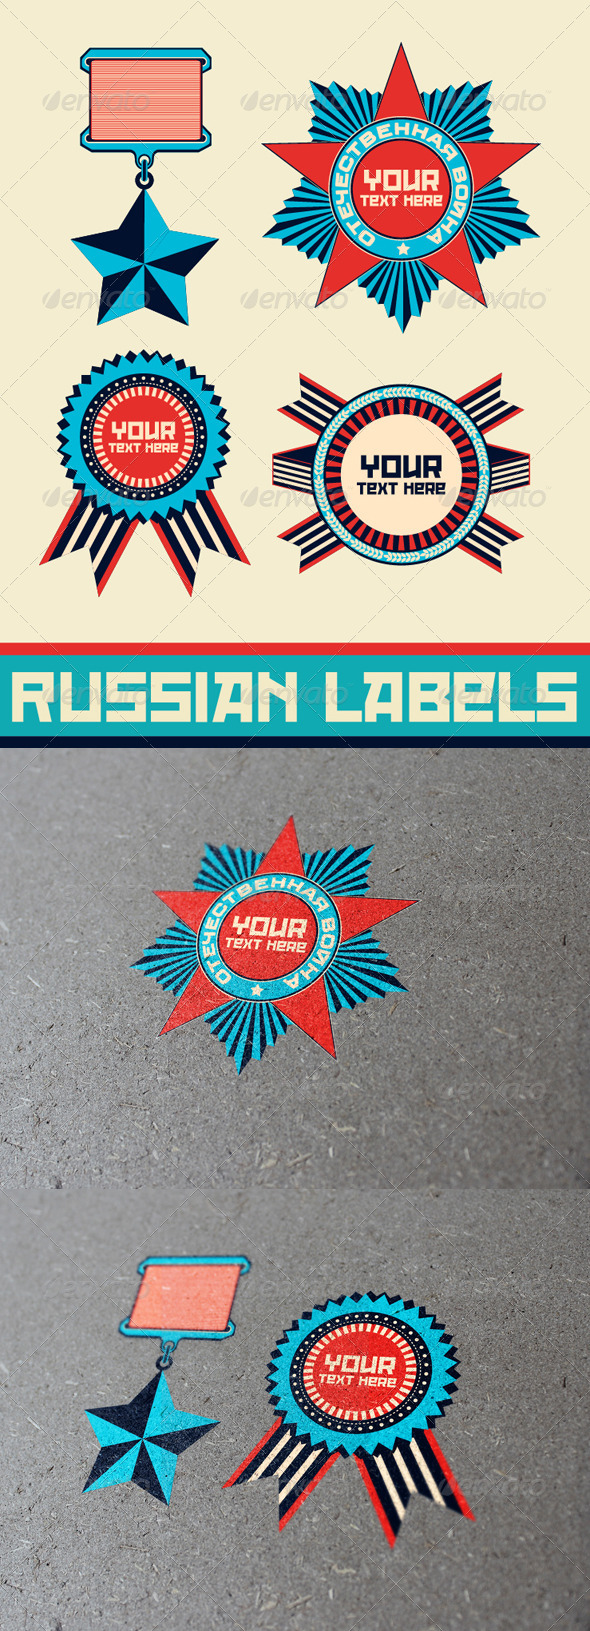 GraphicRiver Russian Vintage Labels Awards 4770585